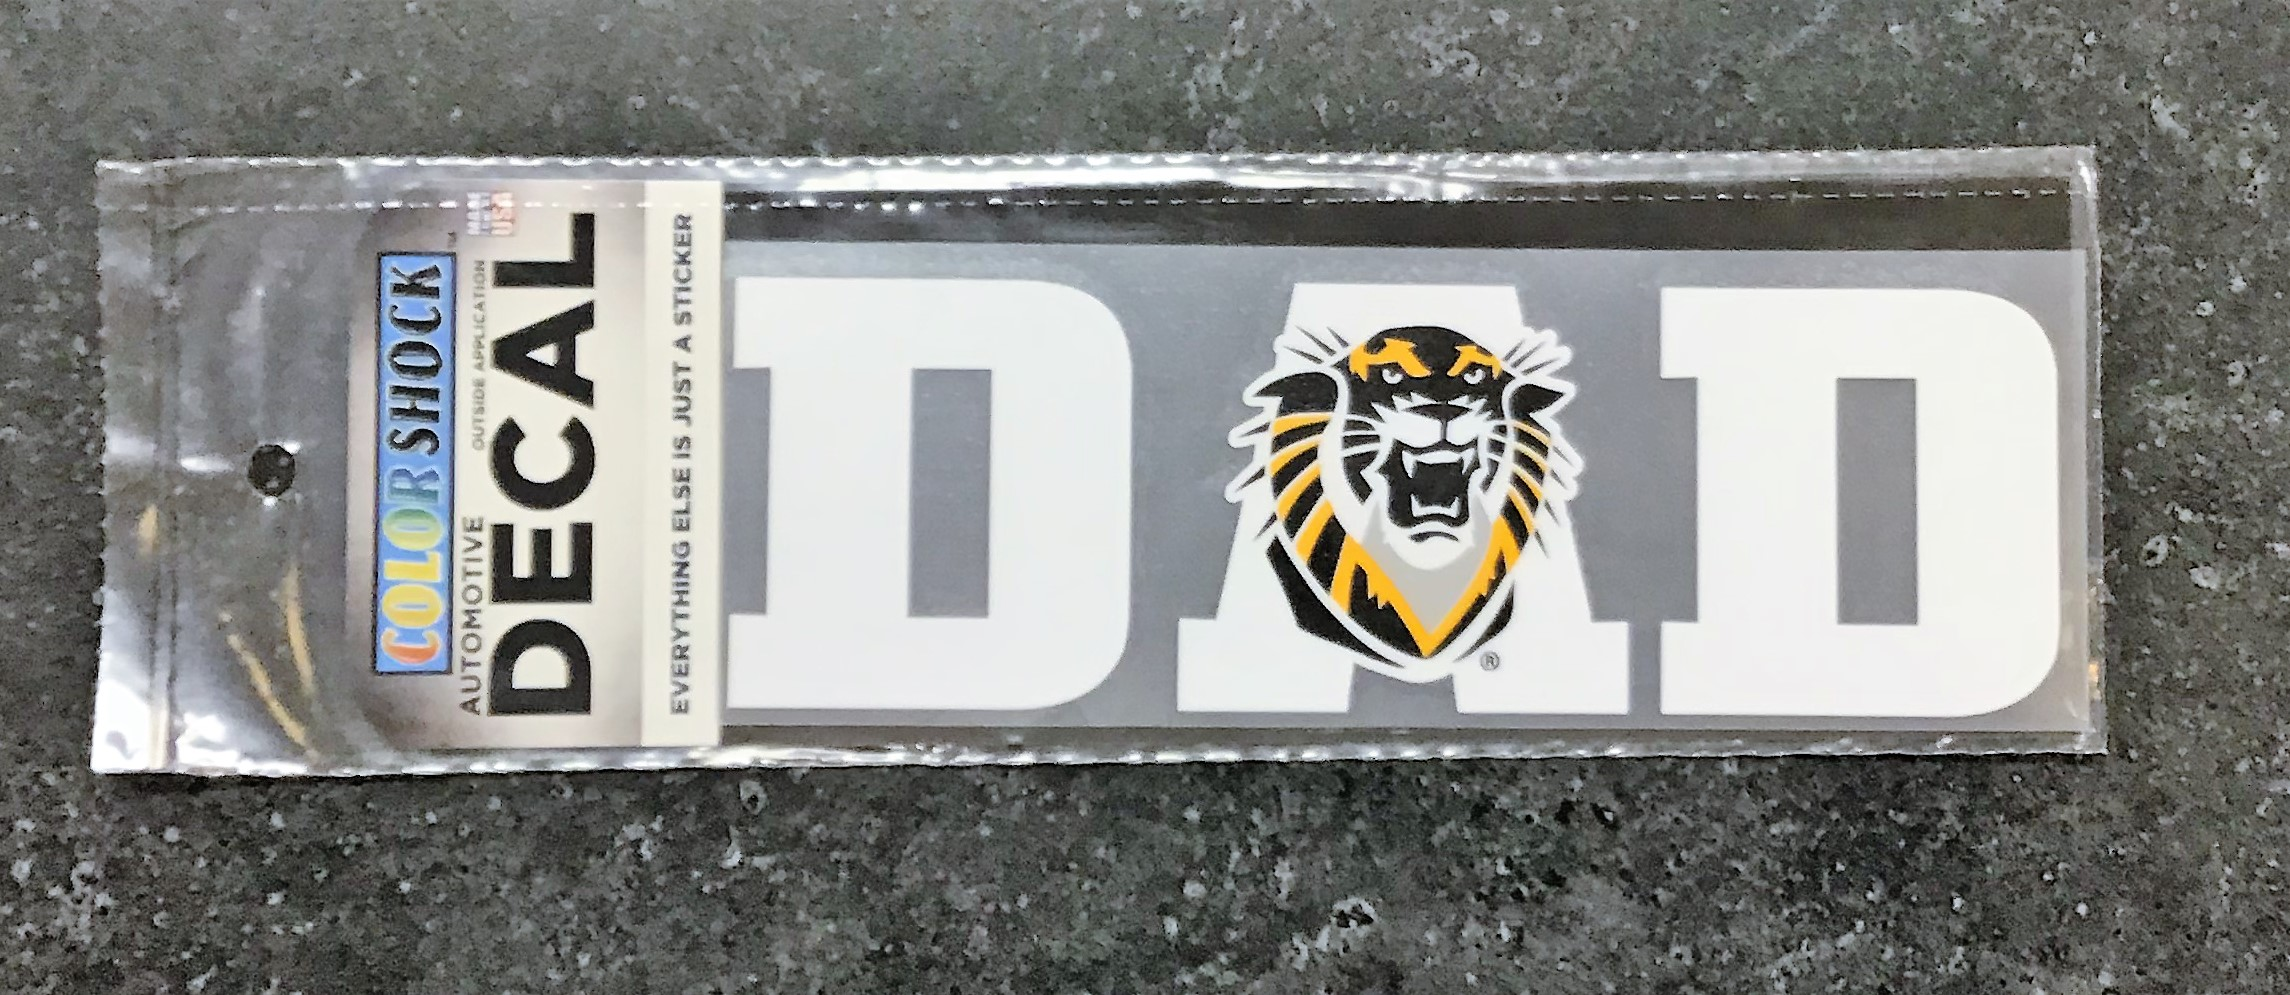 Image for the Mom or Dad Decal product